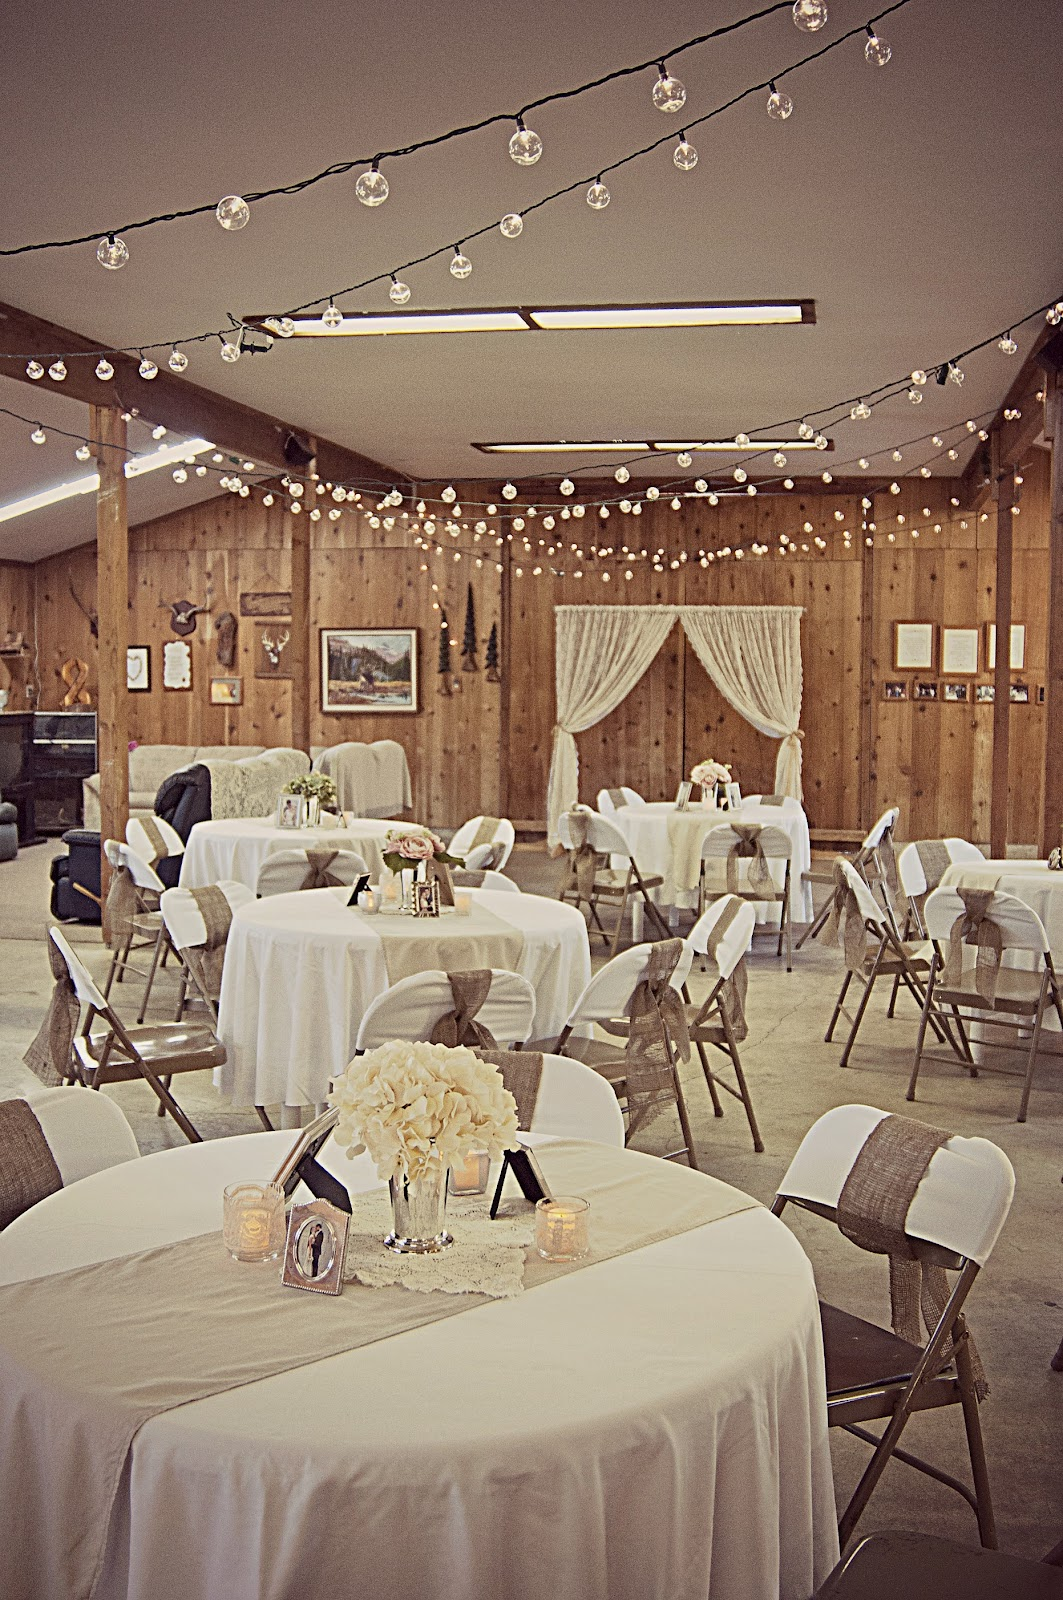 Cheap Chair Covers Near Me Good Posture Jessica Hills Photography Seattle Barn Reception